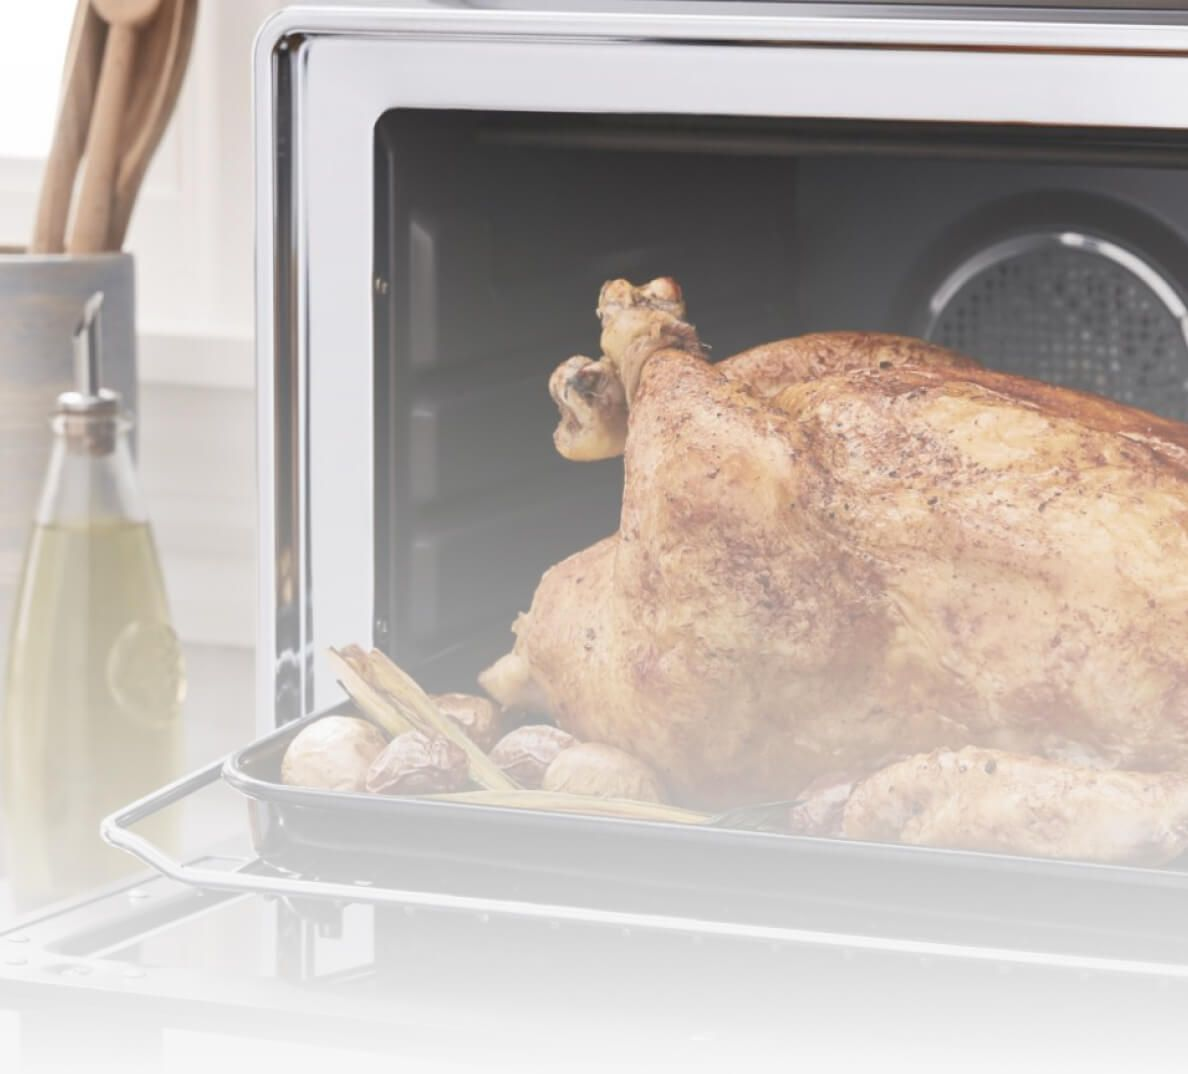 A roasted chicken in an oven.